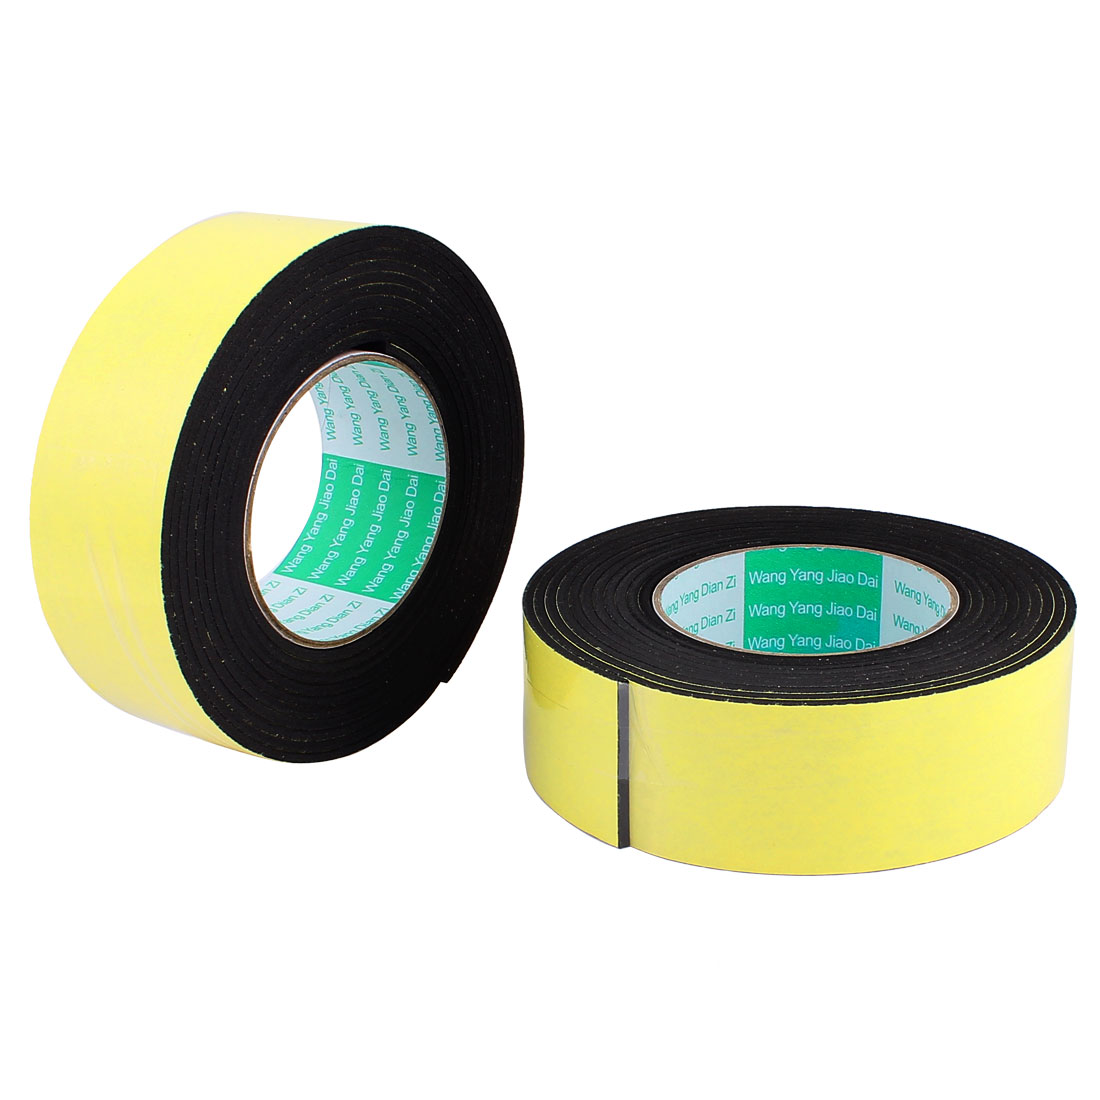 2 Pcs 4.5CM Width 4M Length 3MM Thick Single Sided Sealing Shockproof Sponge Tape